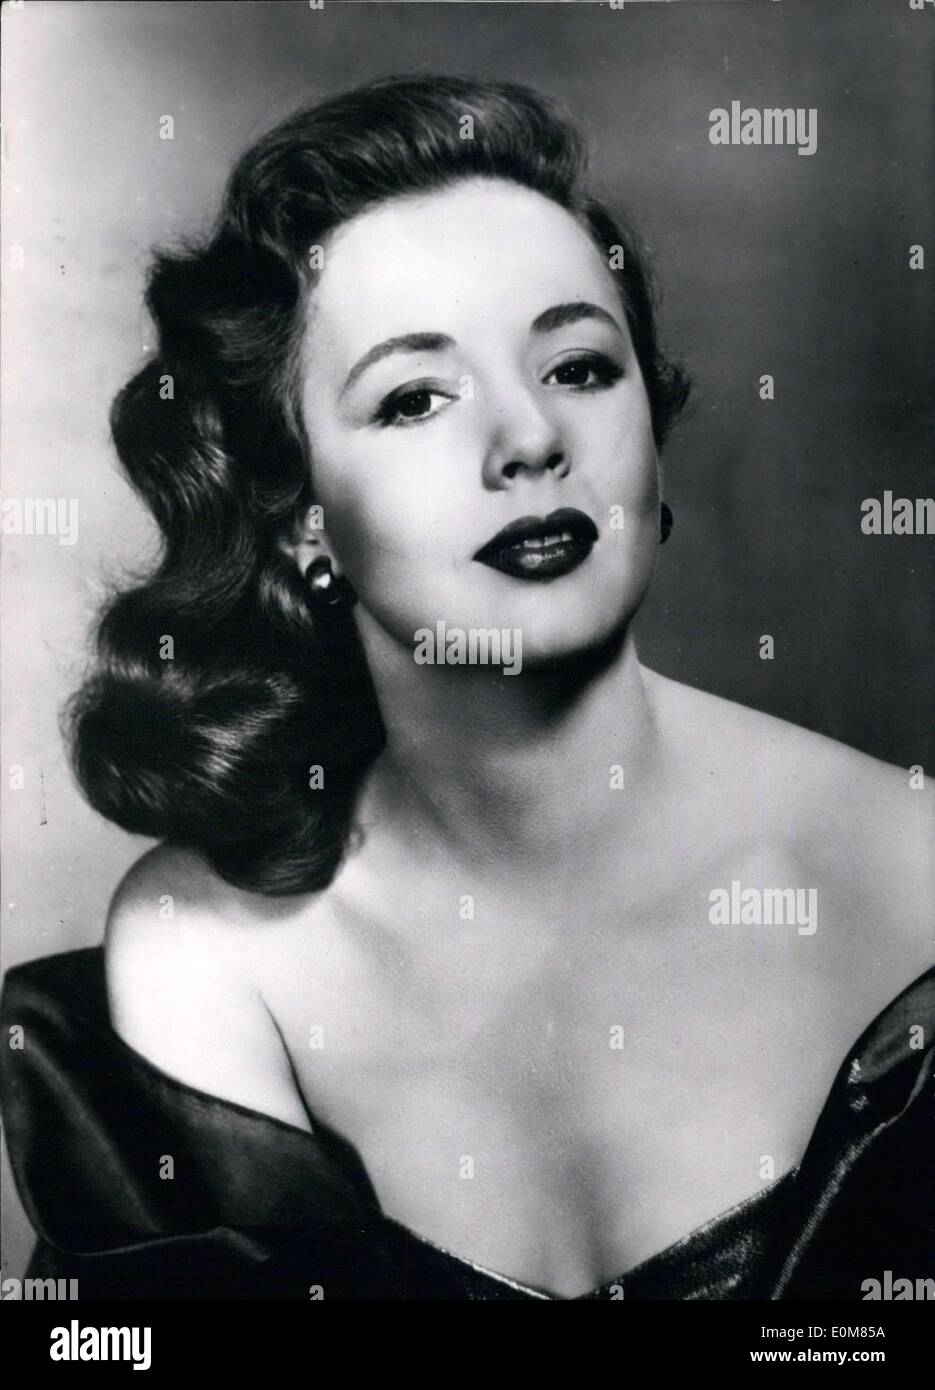 Jan. 18, 1954 - In order to fight against the publicity in favor of blondes and brunettes, a new association has popped up in Hollywood: America's National Organization of Redheads''. Piper Laurte, the star of ''The Louisiana Gentleman,'' was elected as the prettiest redhead of the year. - Stock Image